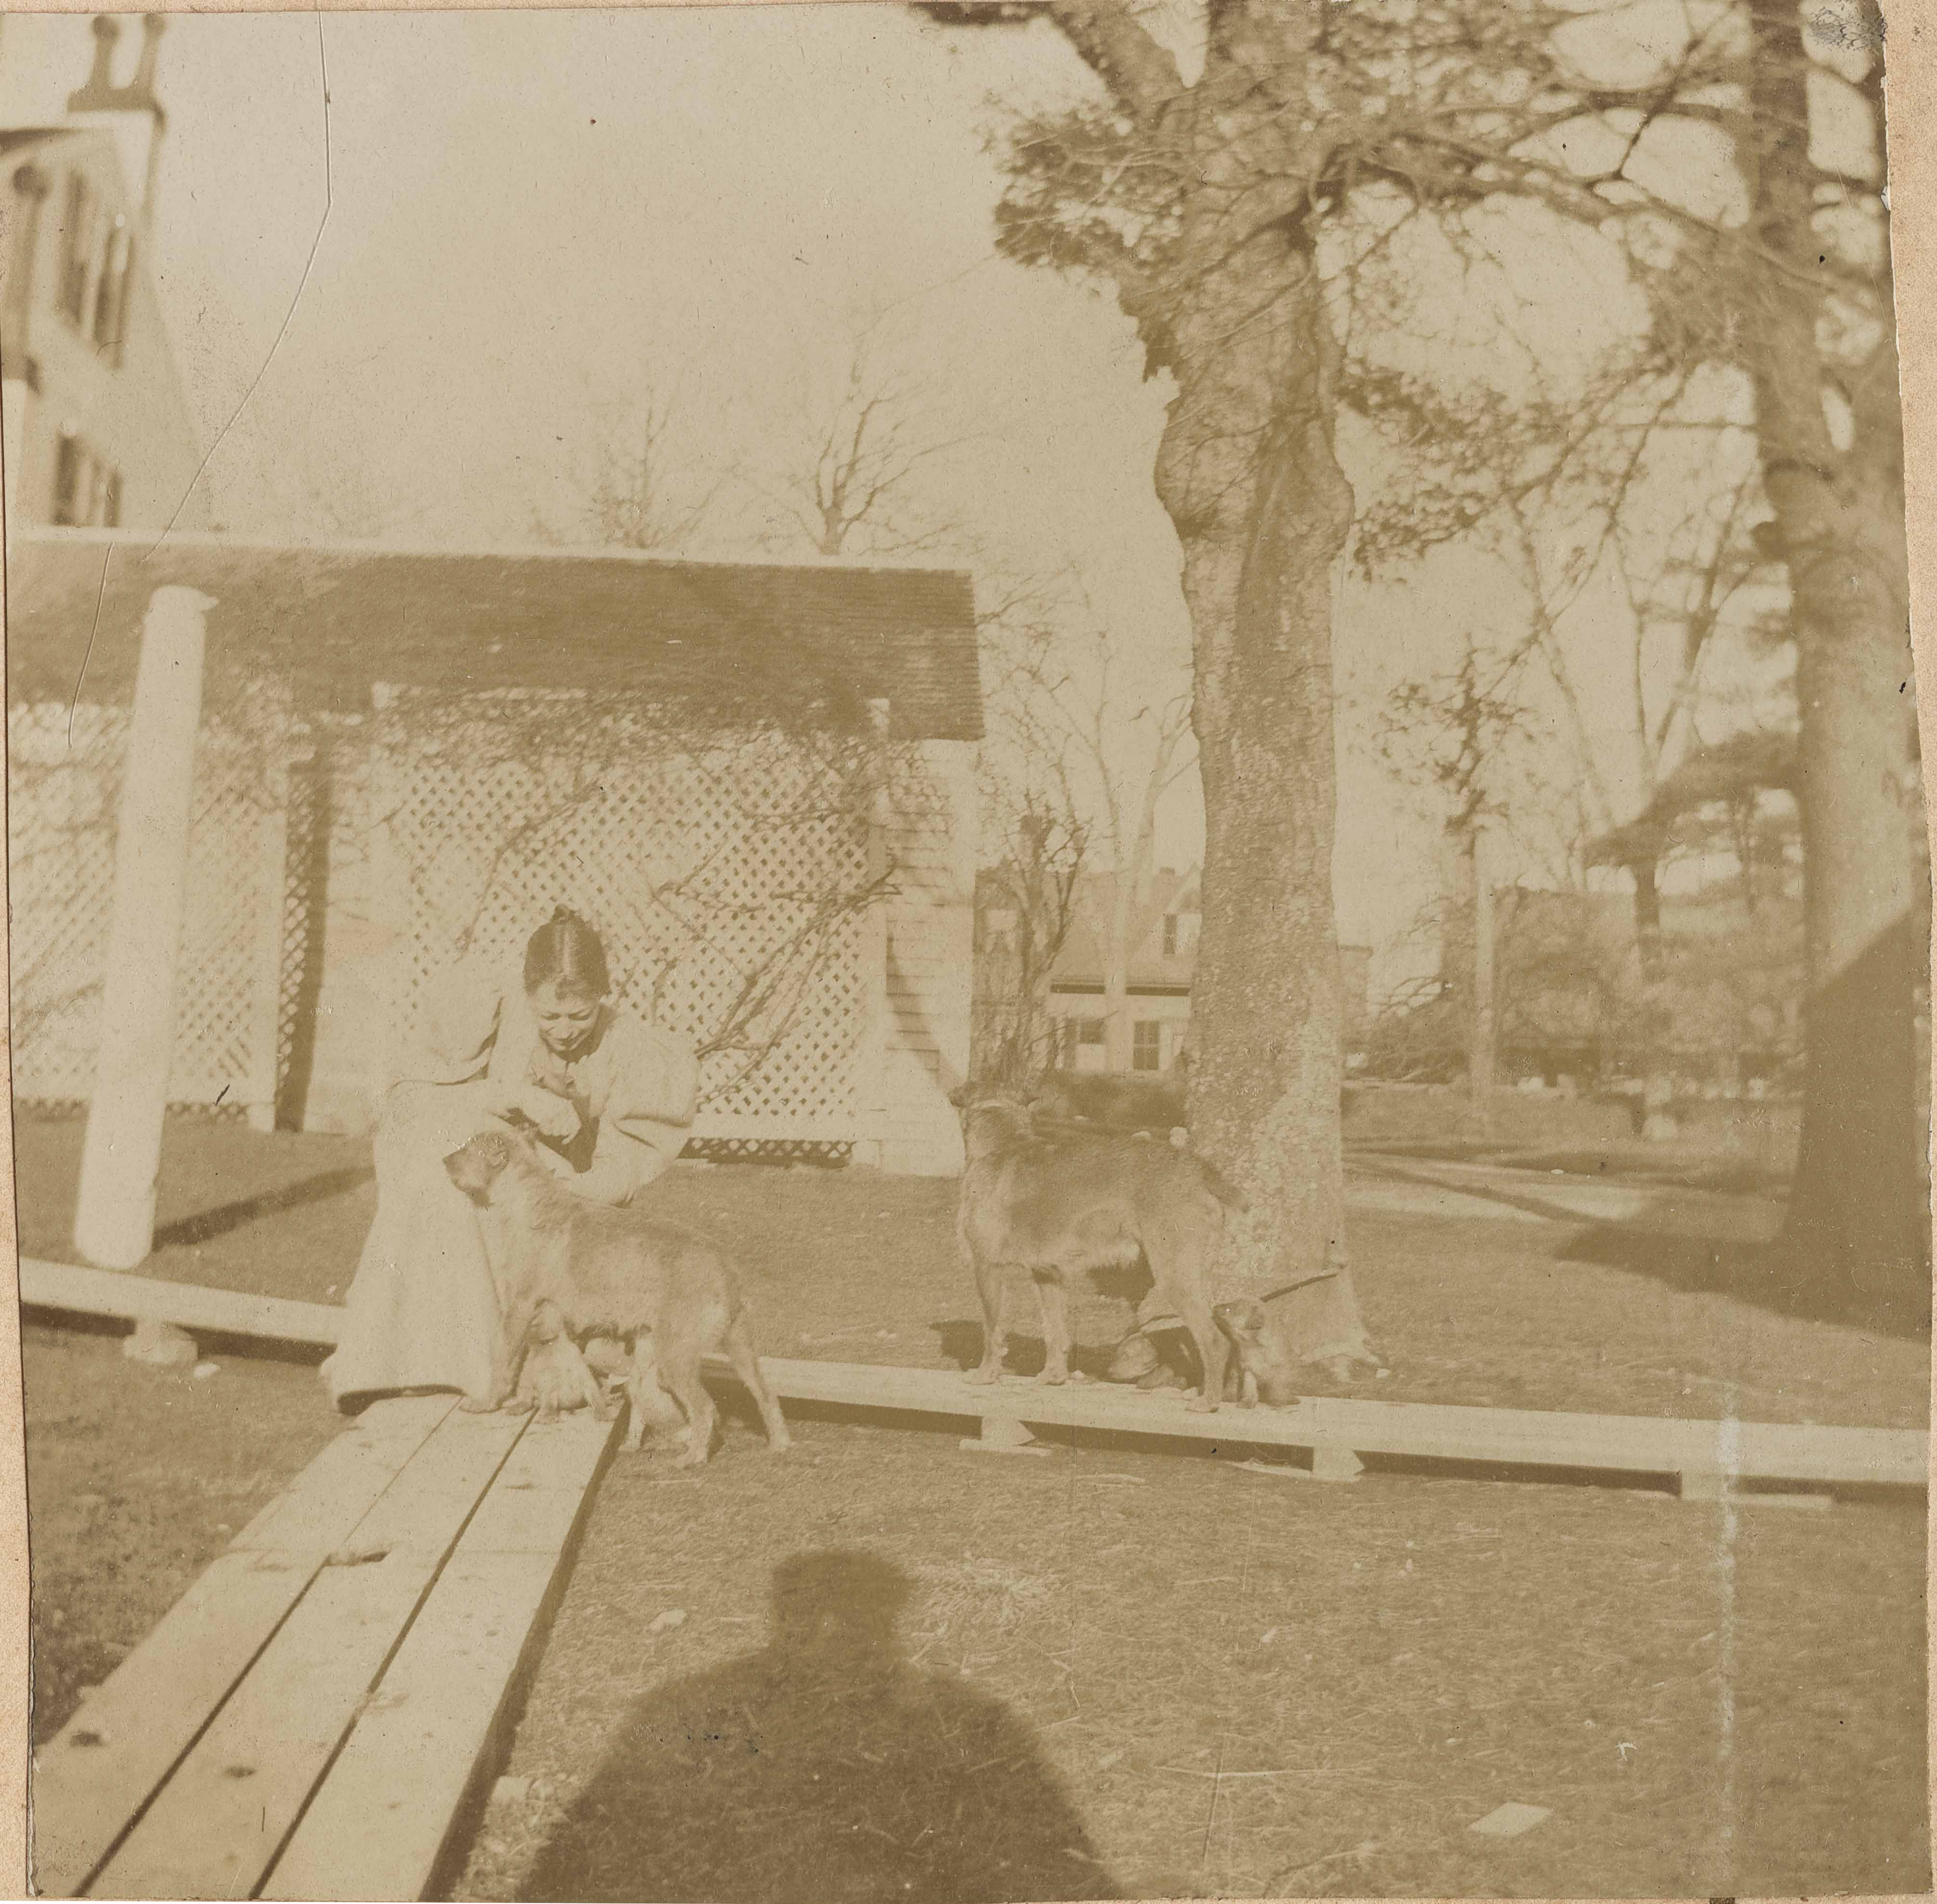 Woman, child, and dogs in backyard